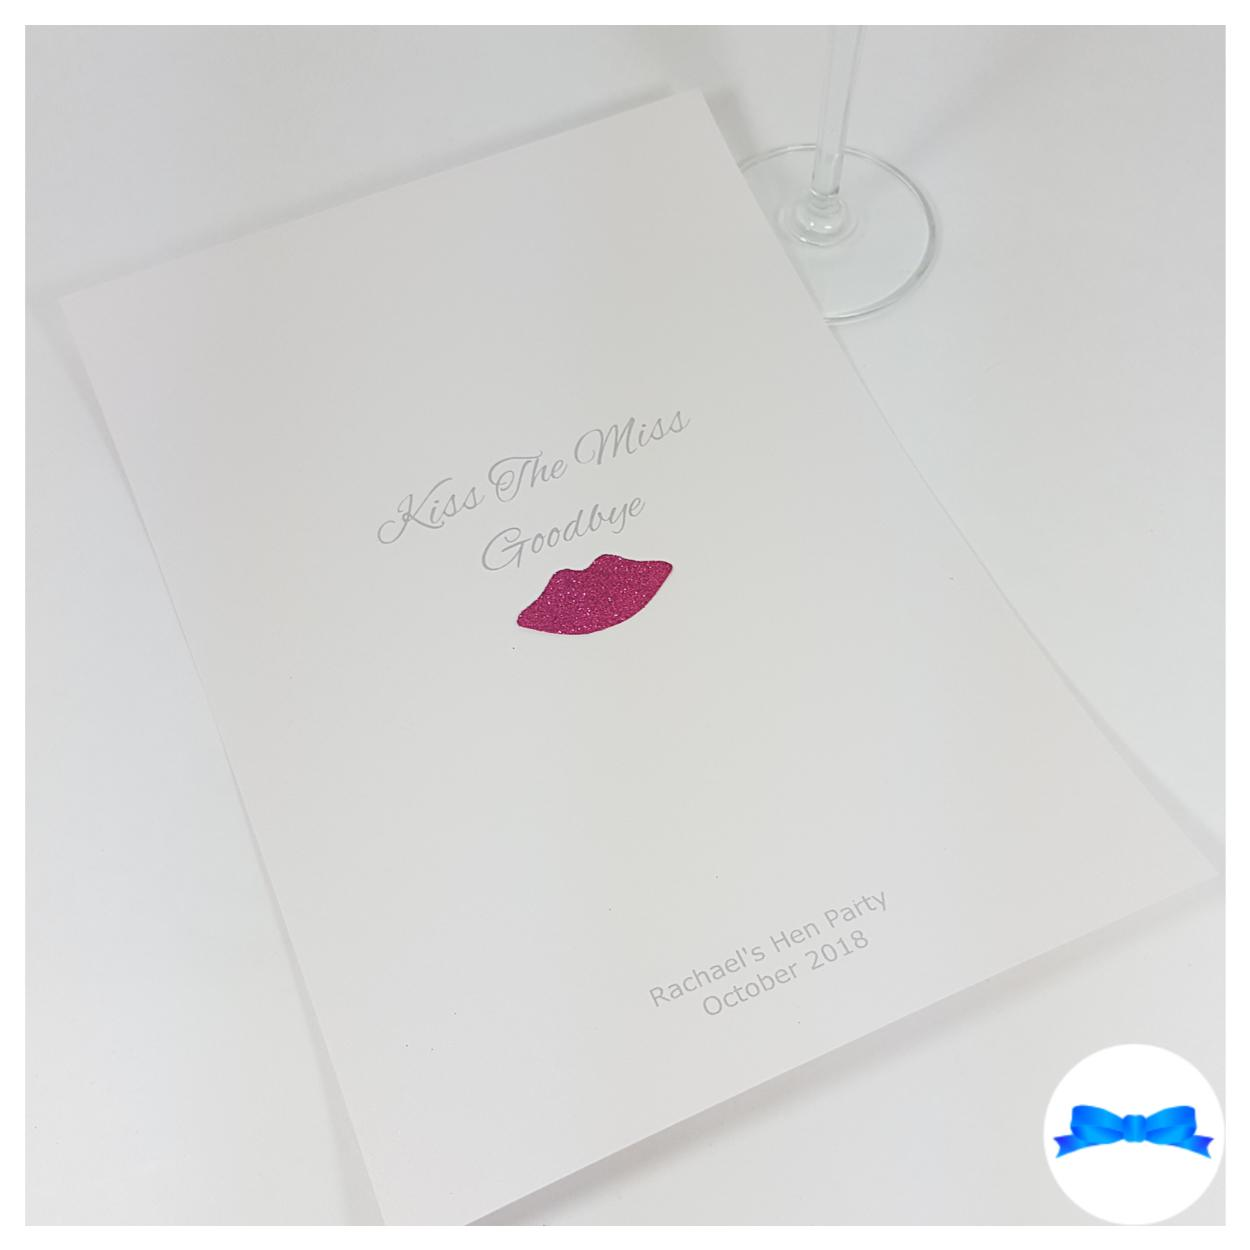 Kiss the miss goodbye card